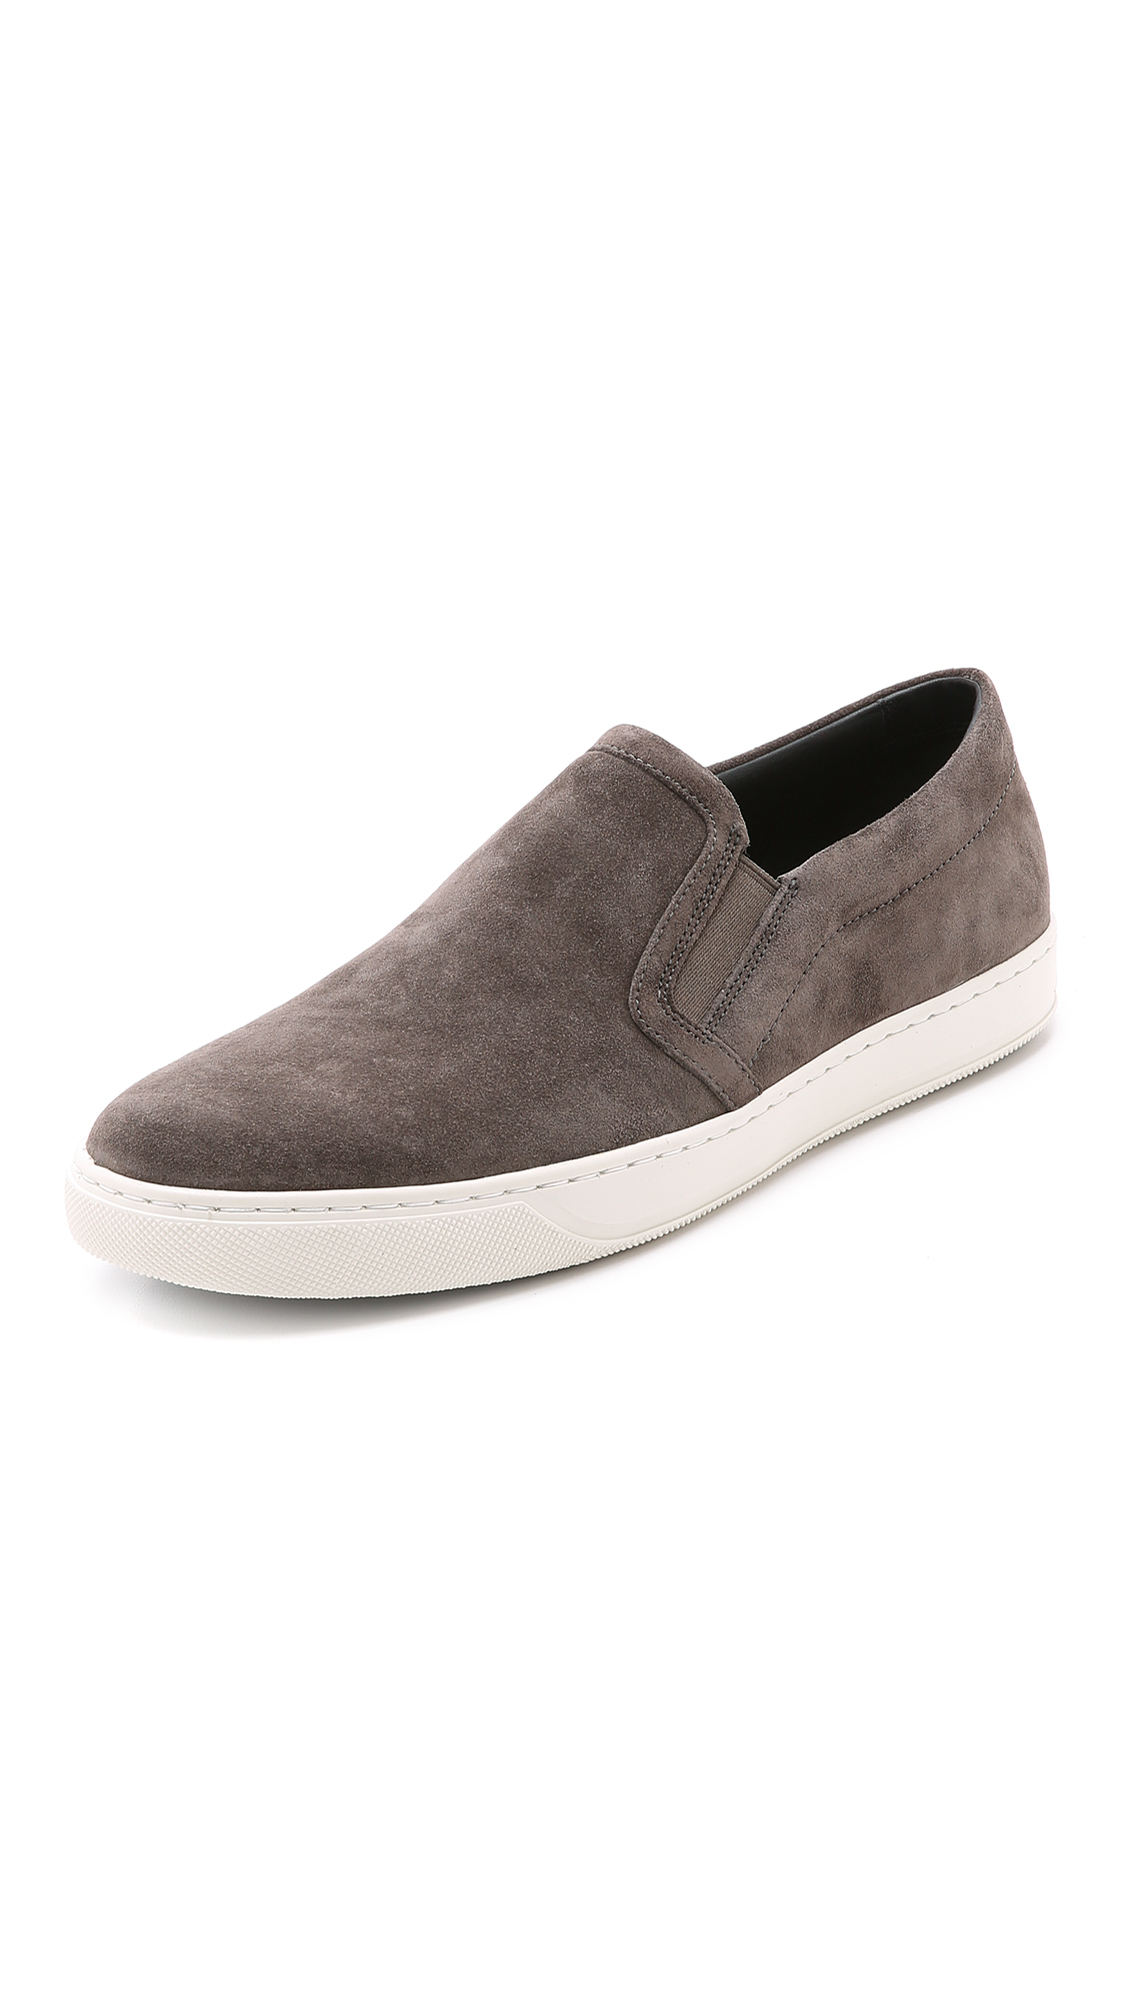 Monk Strap Shoes Guide together with Puma761699 in addition Style In Film Plein Soleil further Creative Recreation Grey Cesario Trainer furthermore Vince Barron Slip On Sneakers Graphite. on grey men s loafers